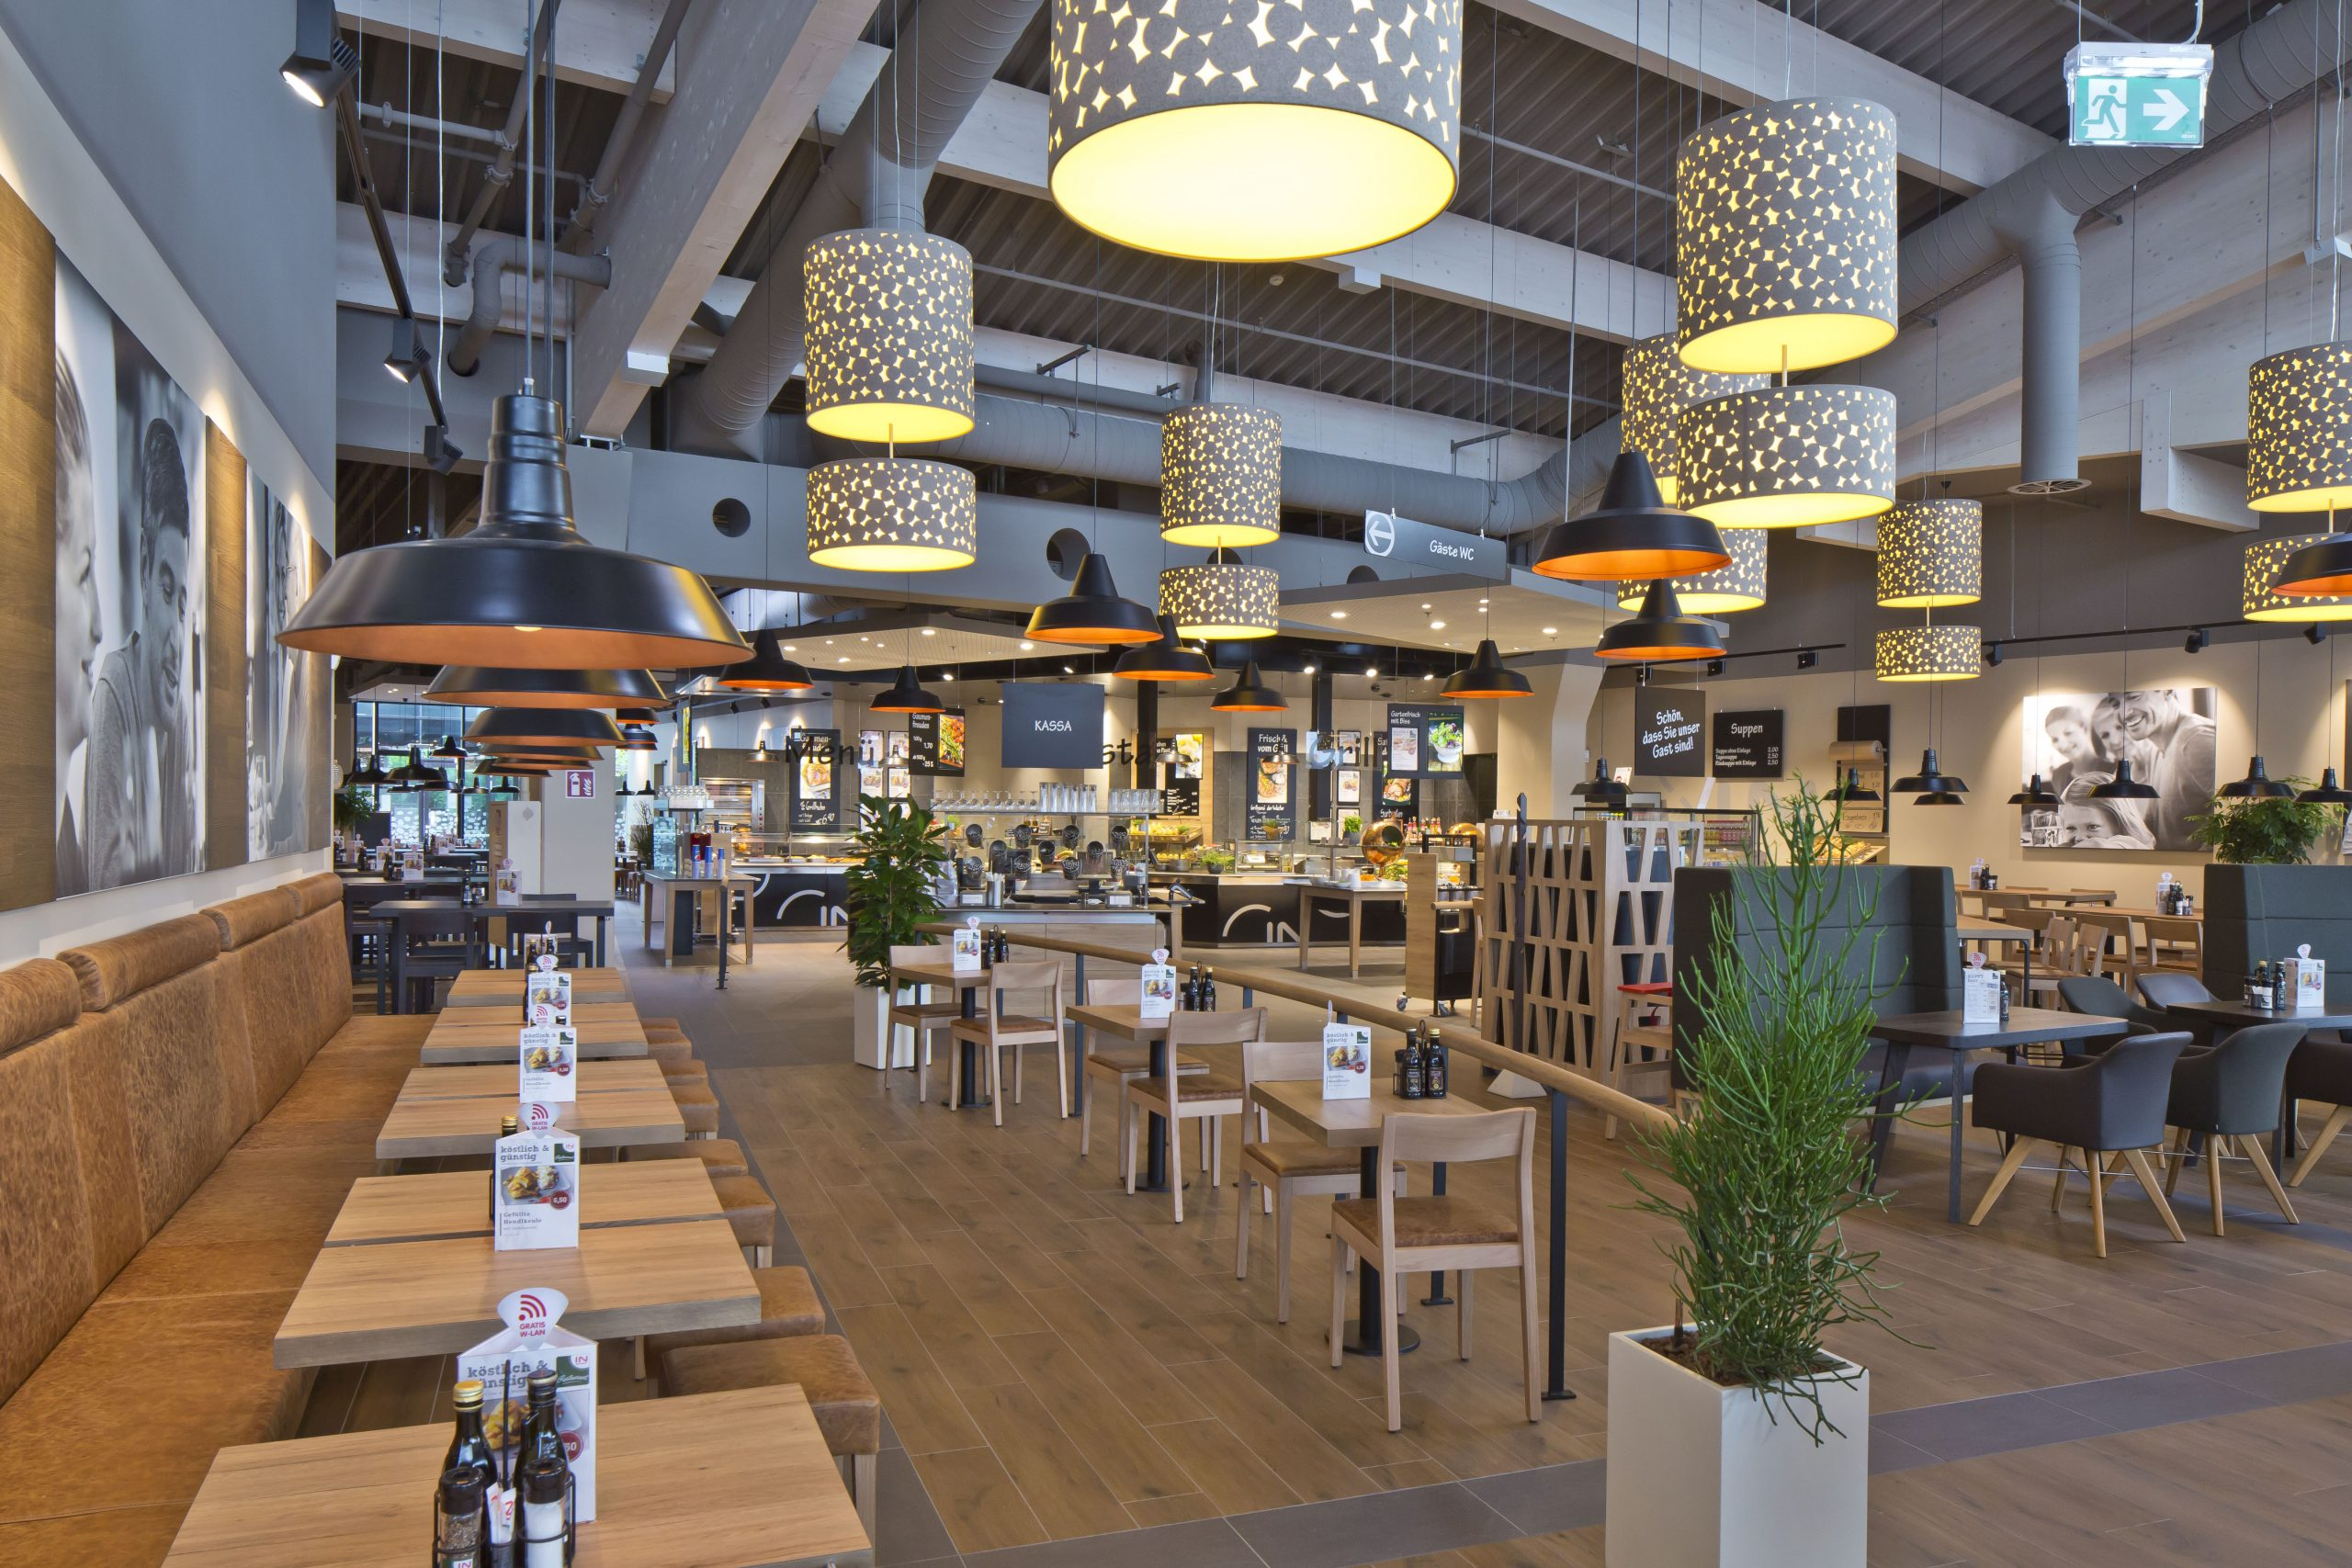 Interspar Restaurant, Wels